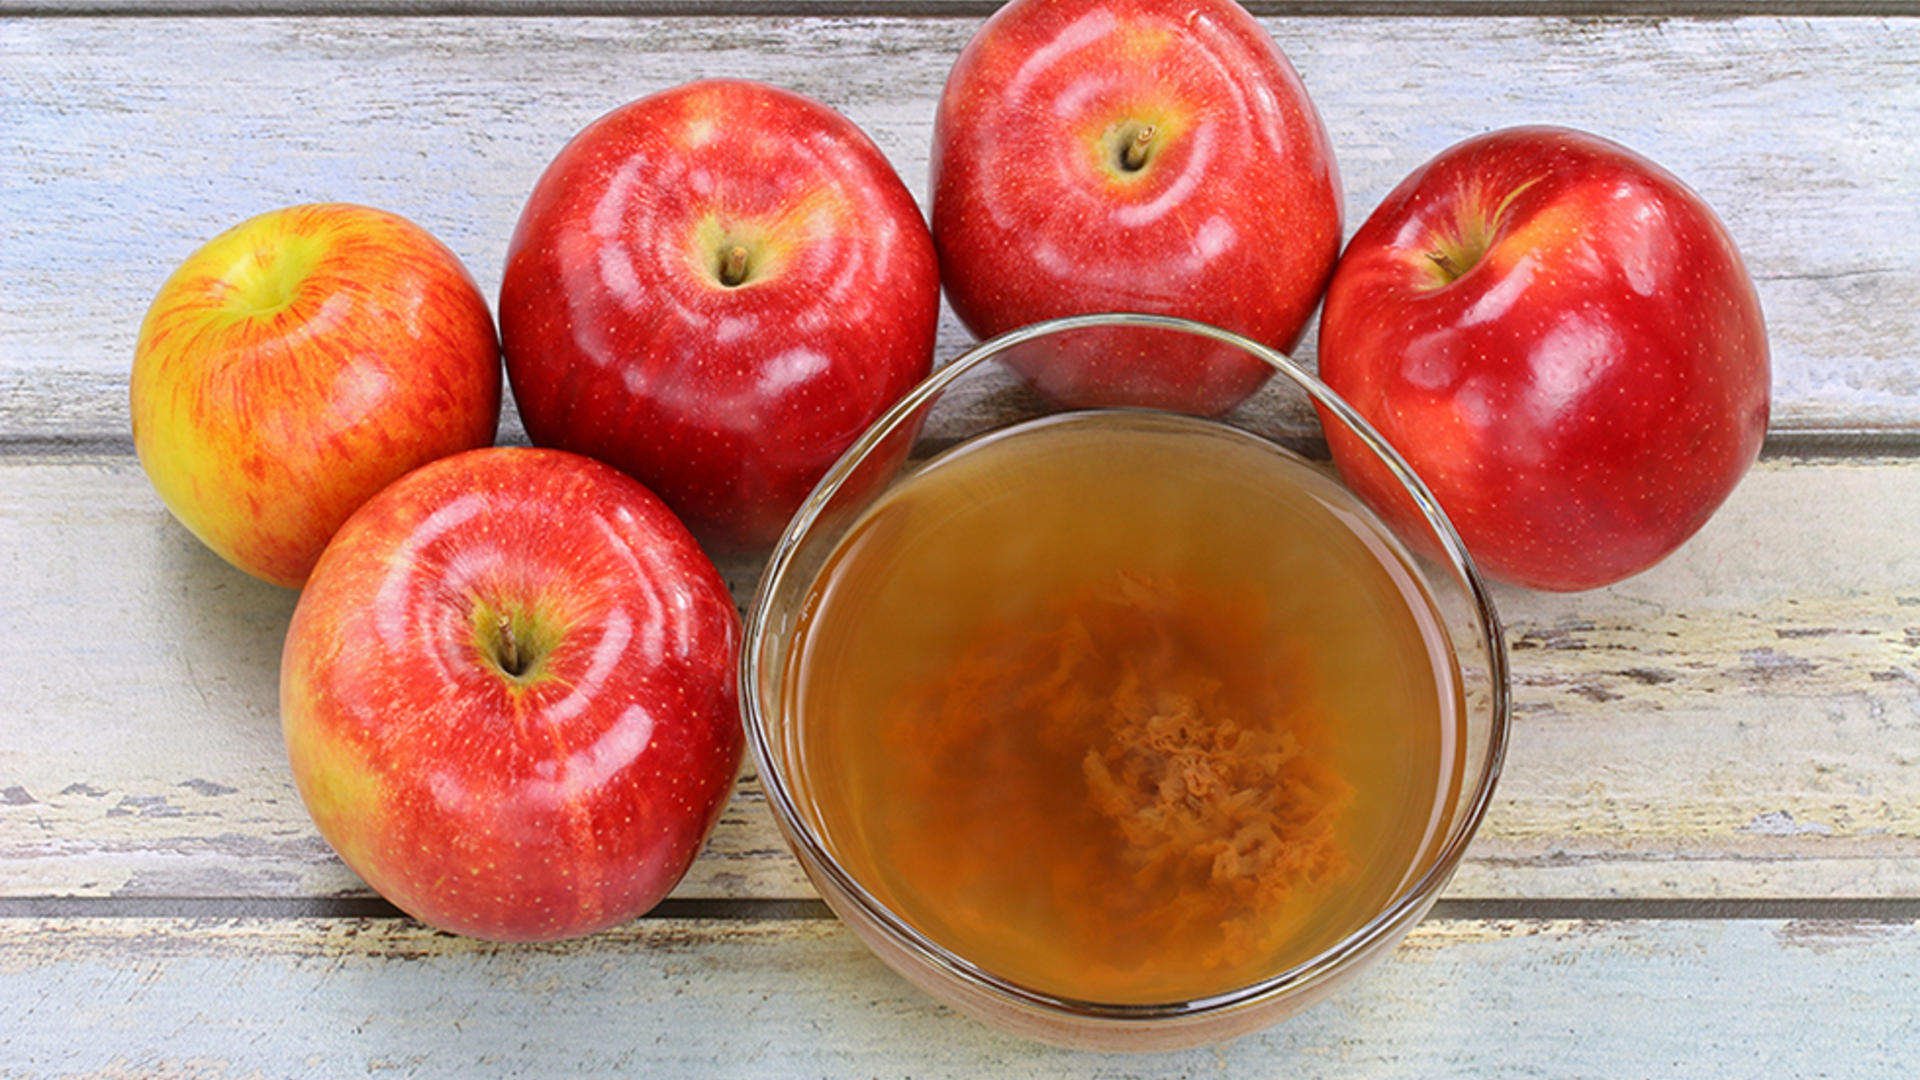 Apples surrounding hard cider